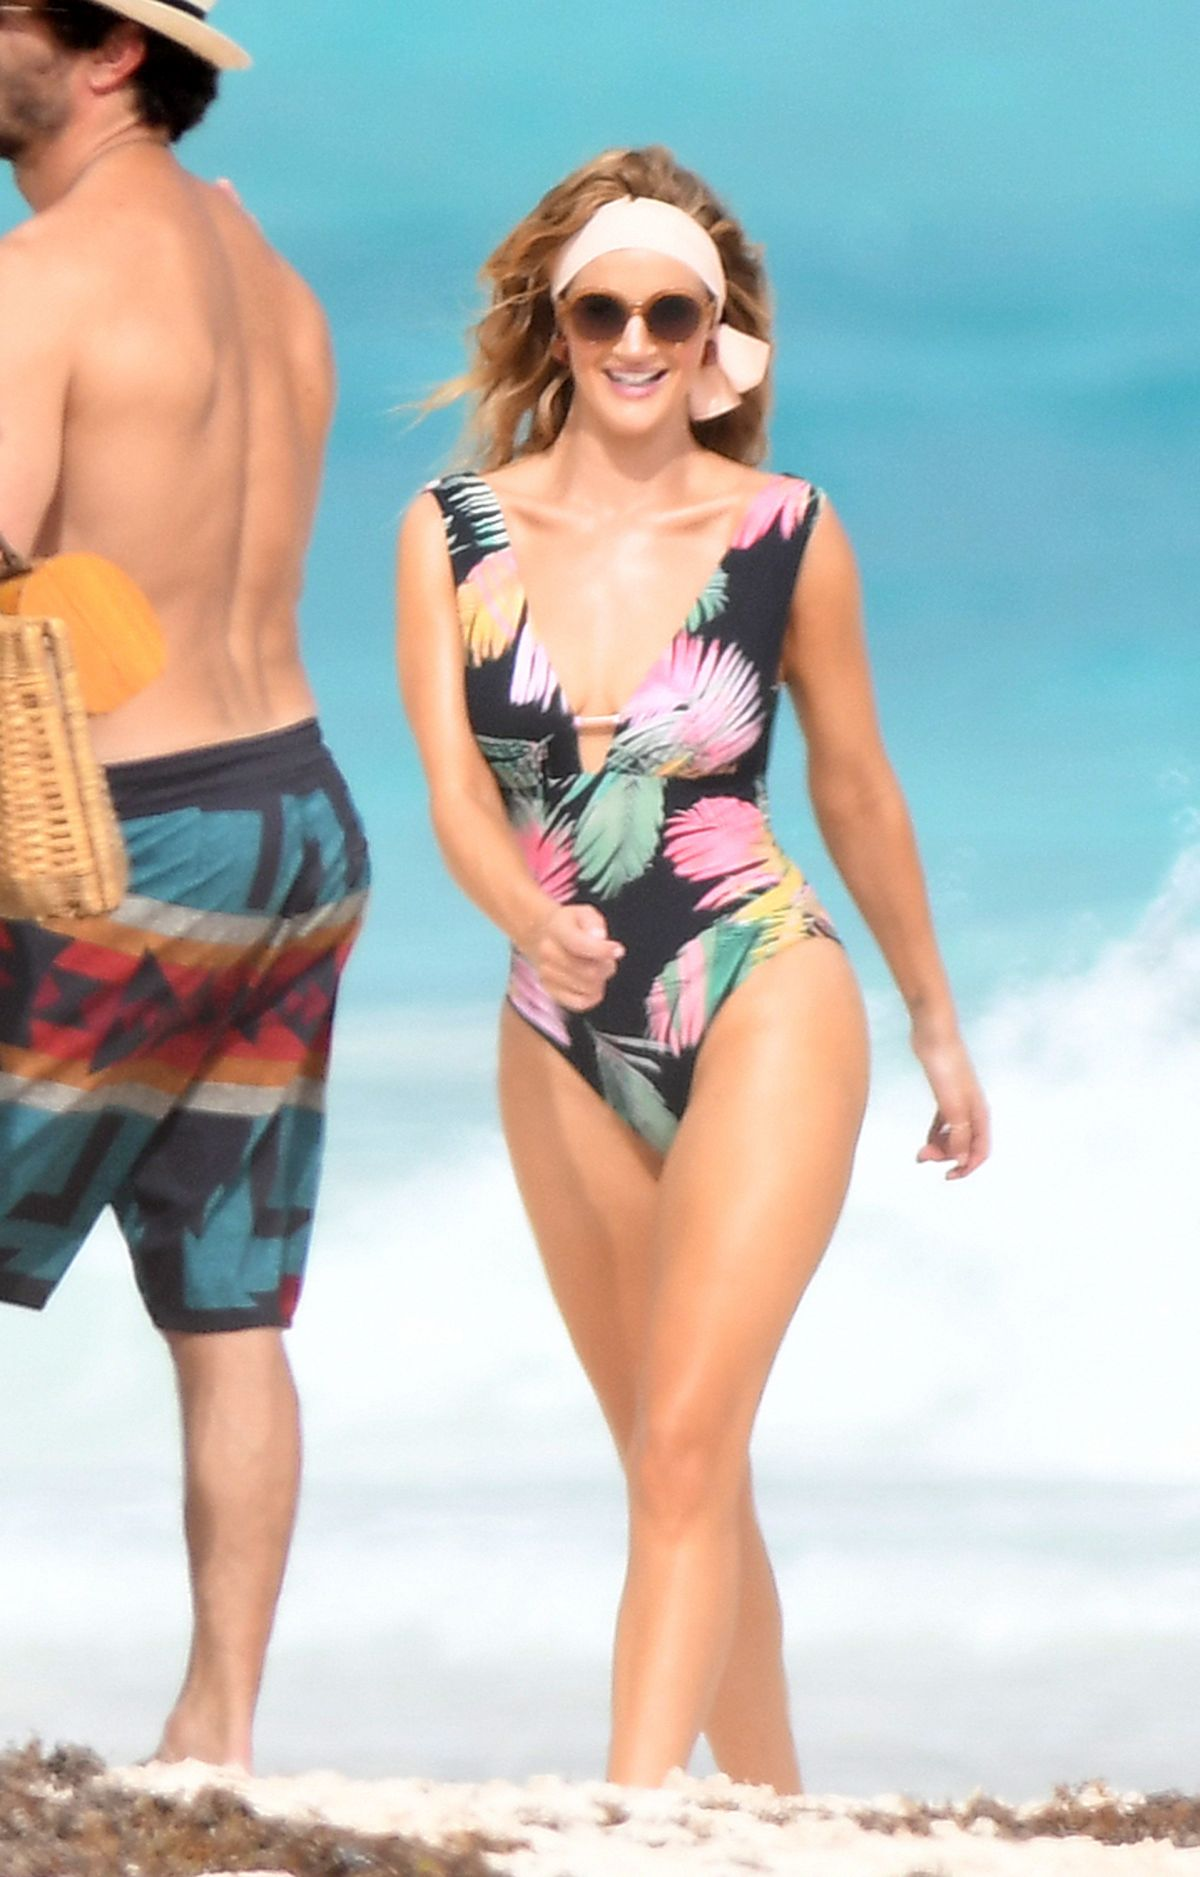 Rosie Huntington Whiteley Bikini Photoshoot at a Beach in the Bahamas Pic 7 of 35